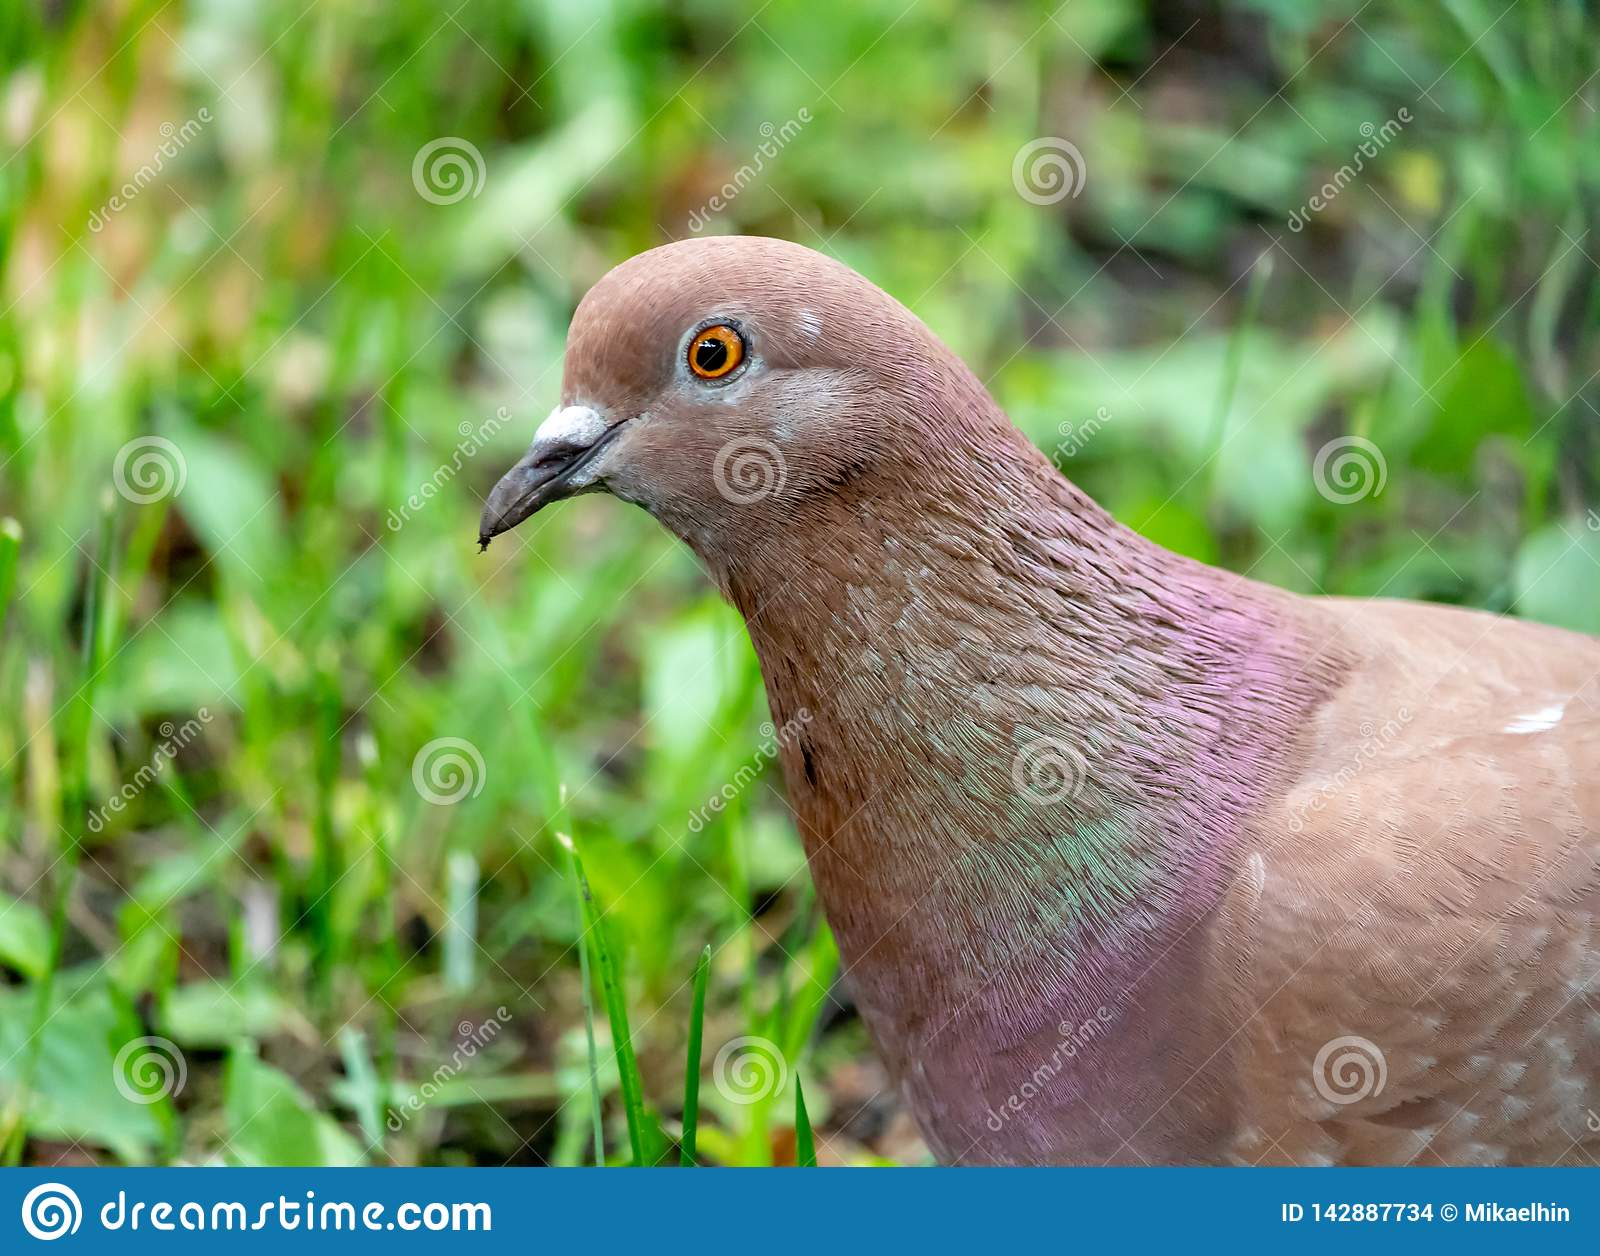 Portrait of brown pigeon in green grass